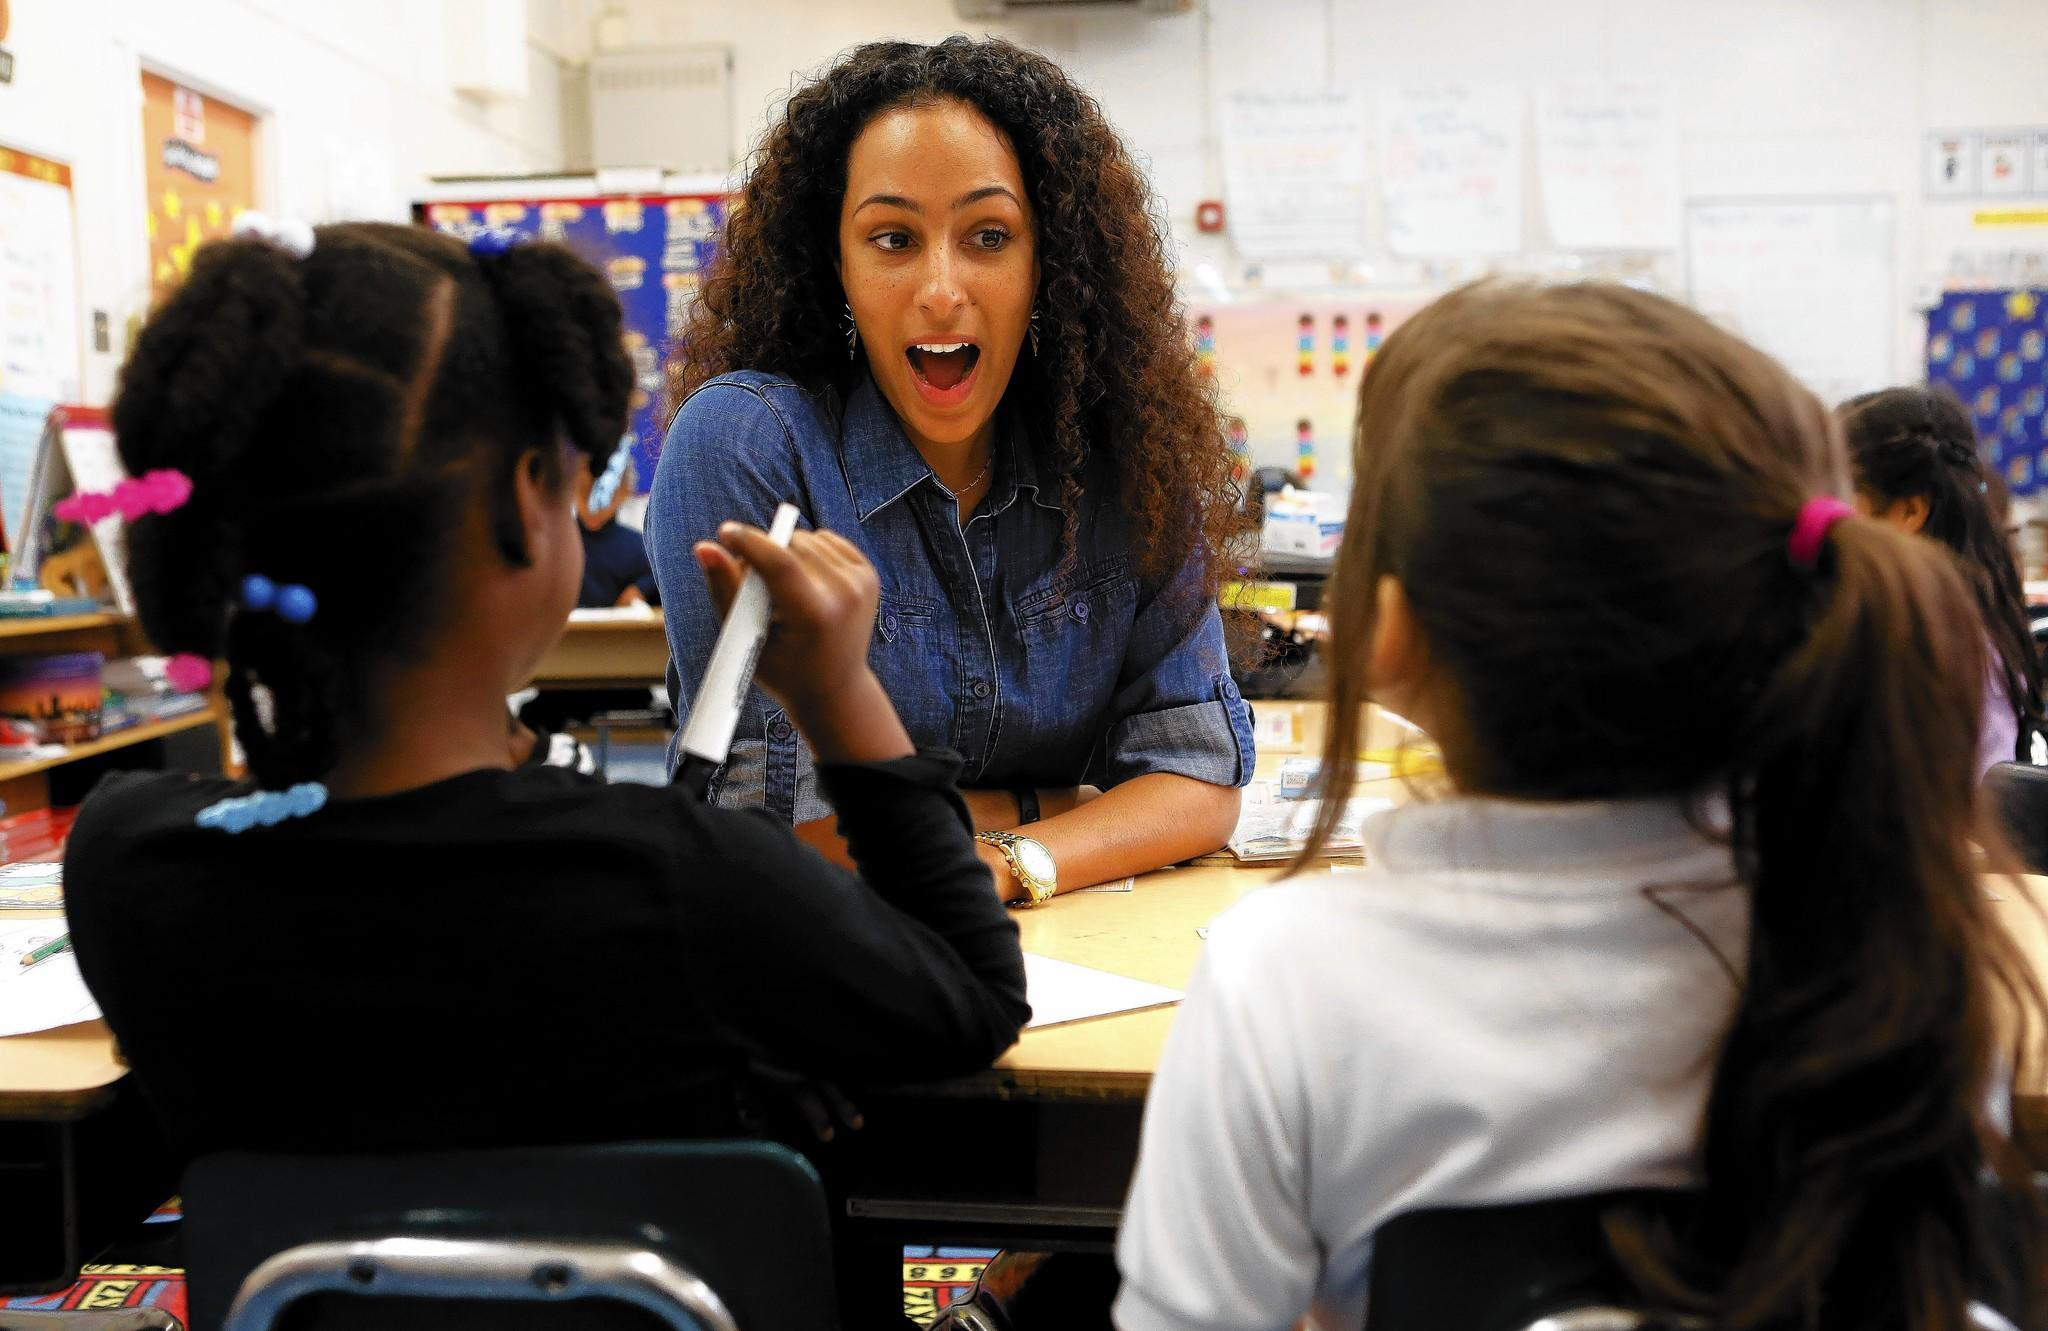 Samantha Pulliam, a first-grade teacher at 24th Street Elementary in Los Angeles, goes over a writing lesson with students. Pulliam, 27, began her teaching career at a charter school because no positions were available in L.A. Unified at the time.